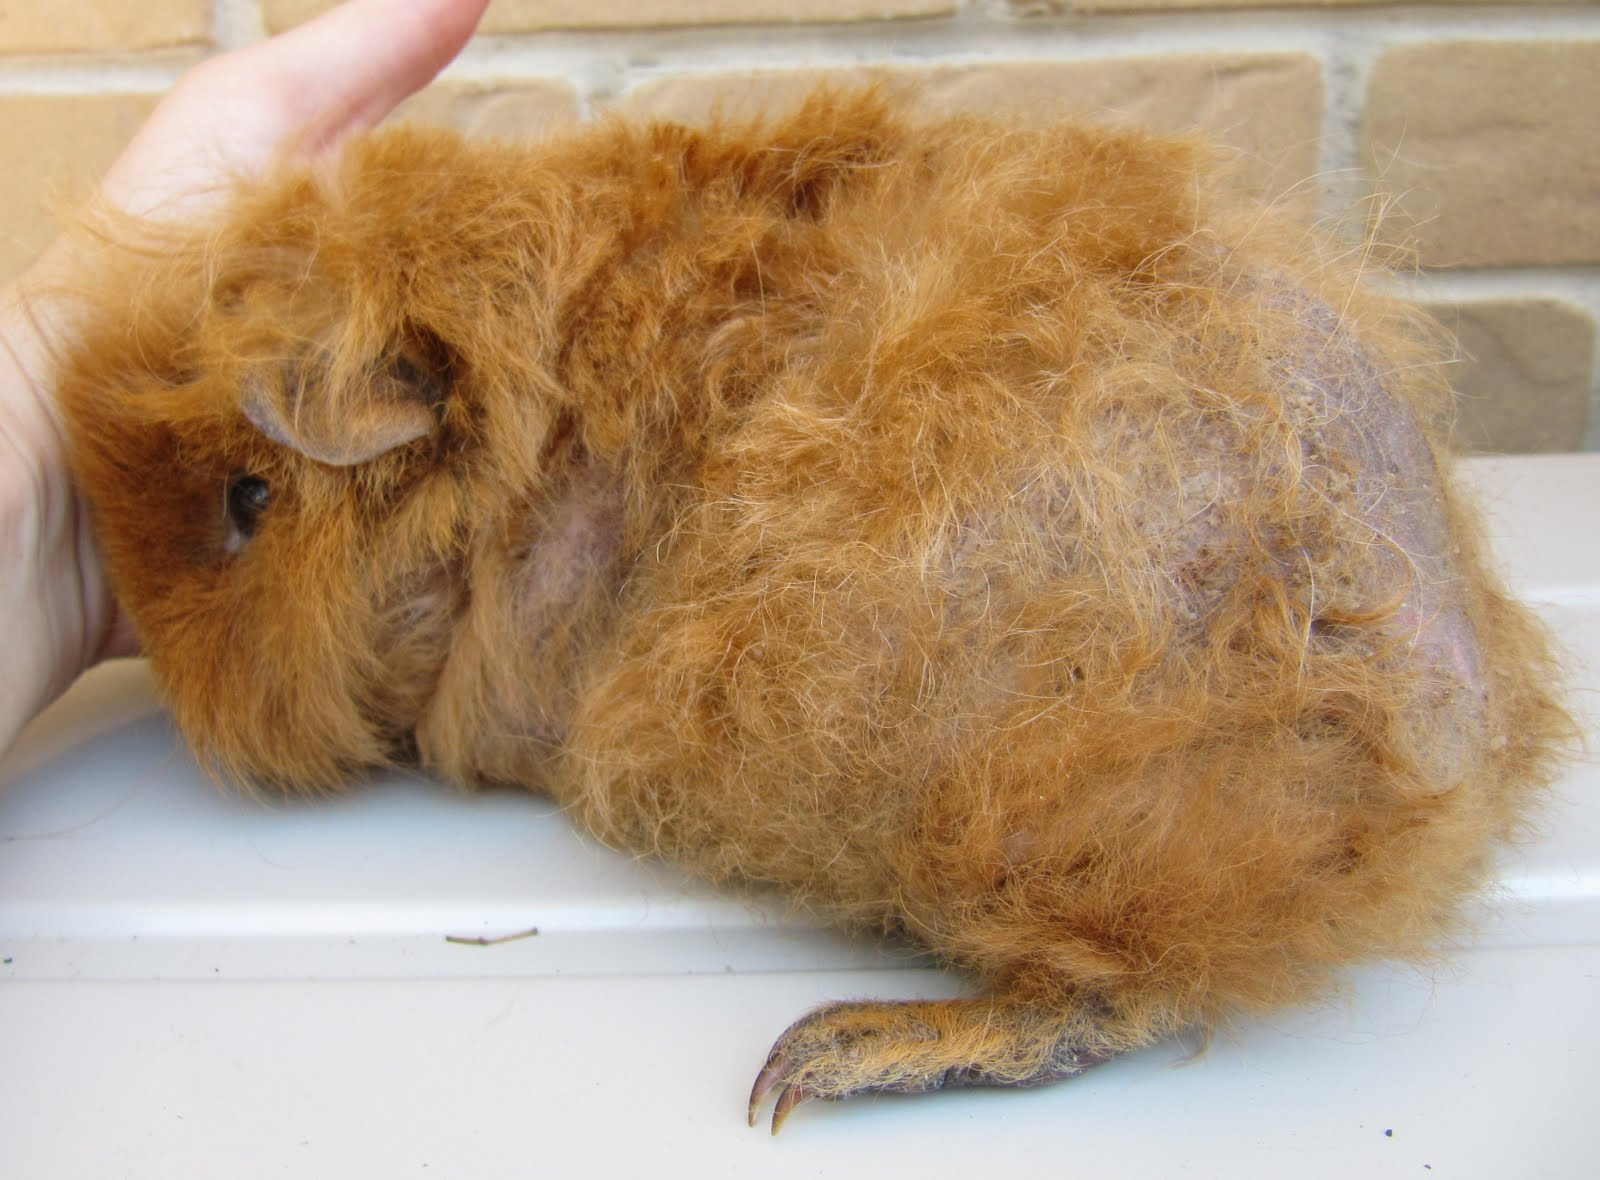 Ear Mites in Guinea Pigs http://emmasguineapigs.blogspot.com/2012/01/sahara-and-worst-case-of-neglect-ive.html